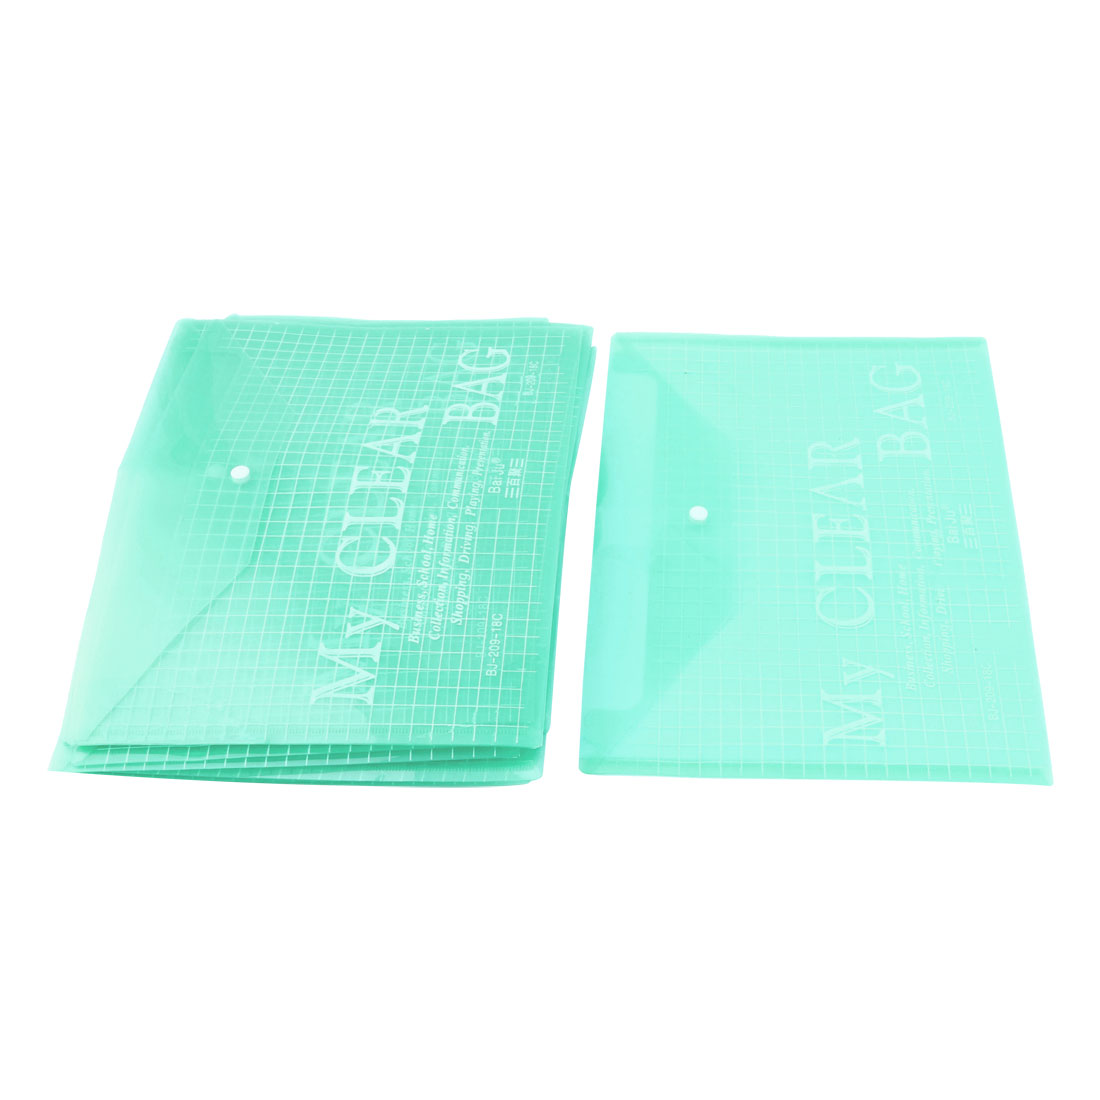 Office Plastic Button Closure A4 Paper File Bag Document Holder Organizer Green 0.1cm Thickness 20pcs